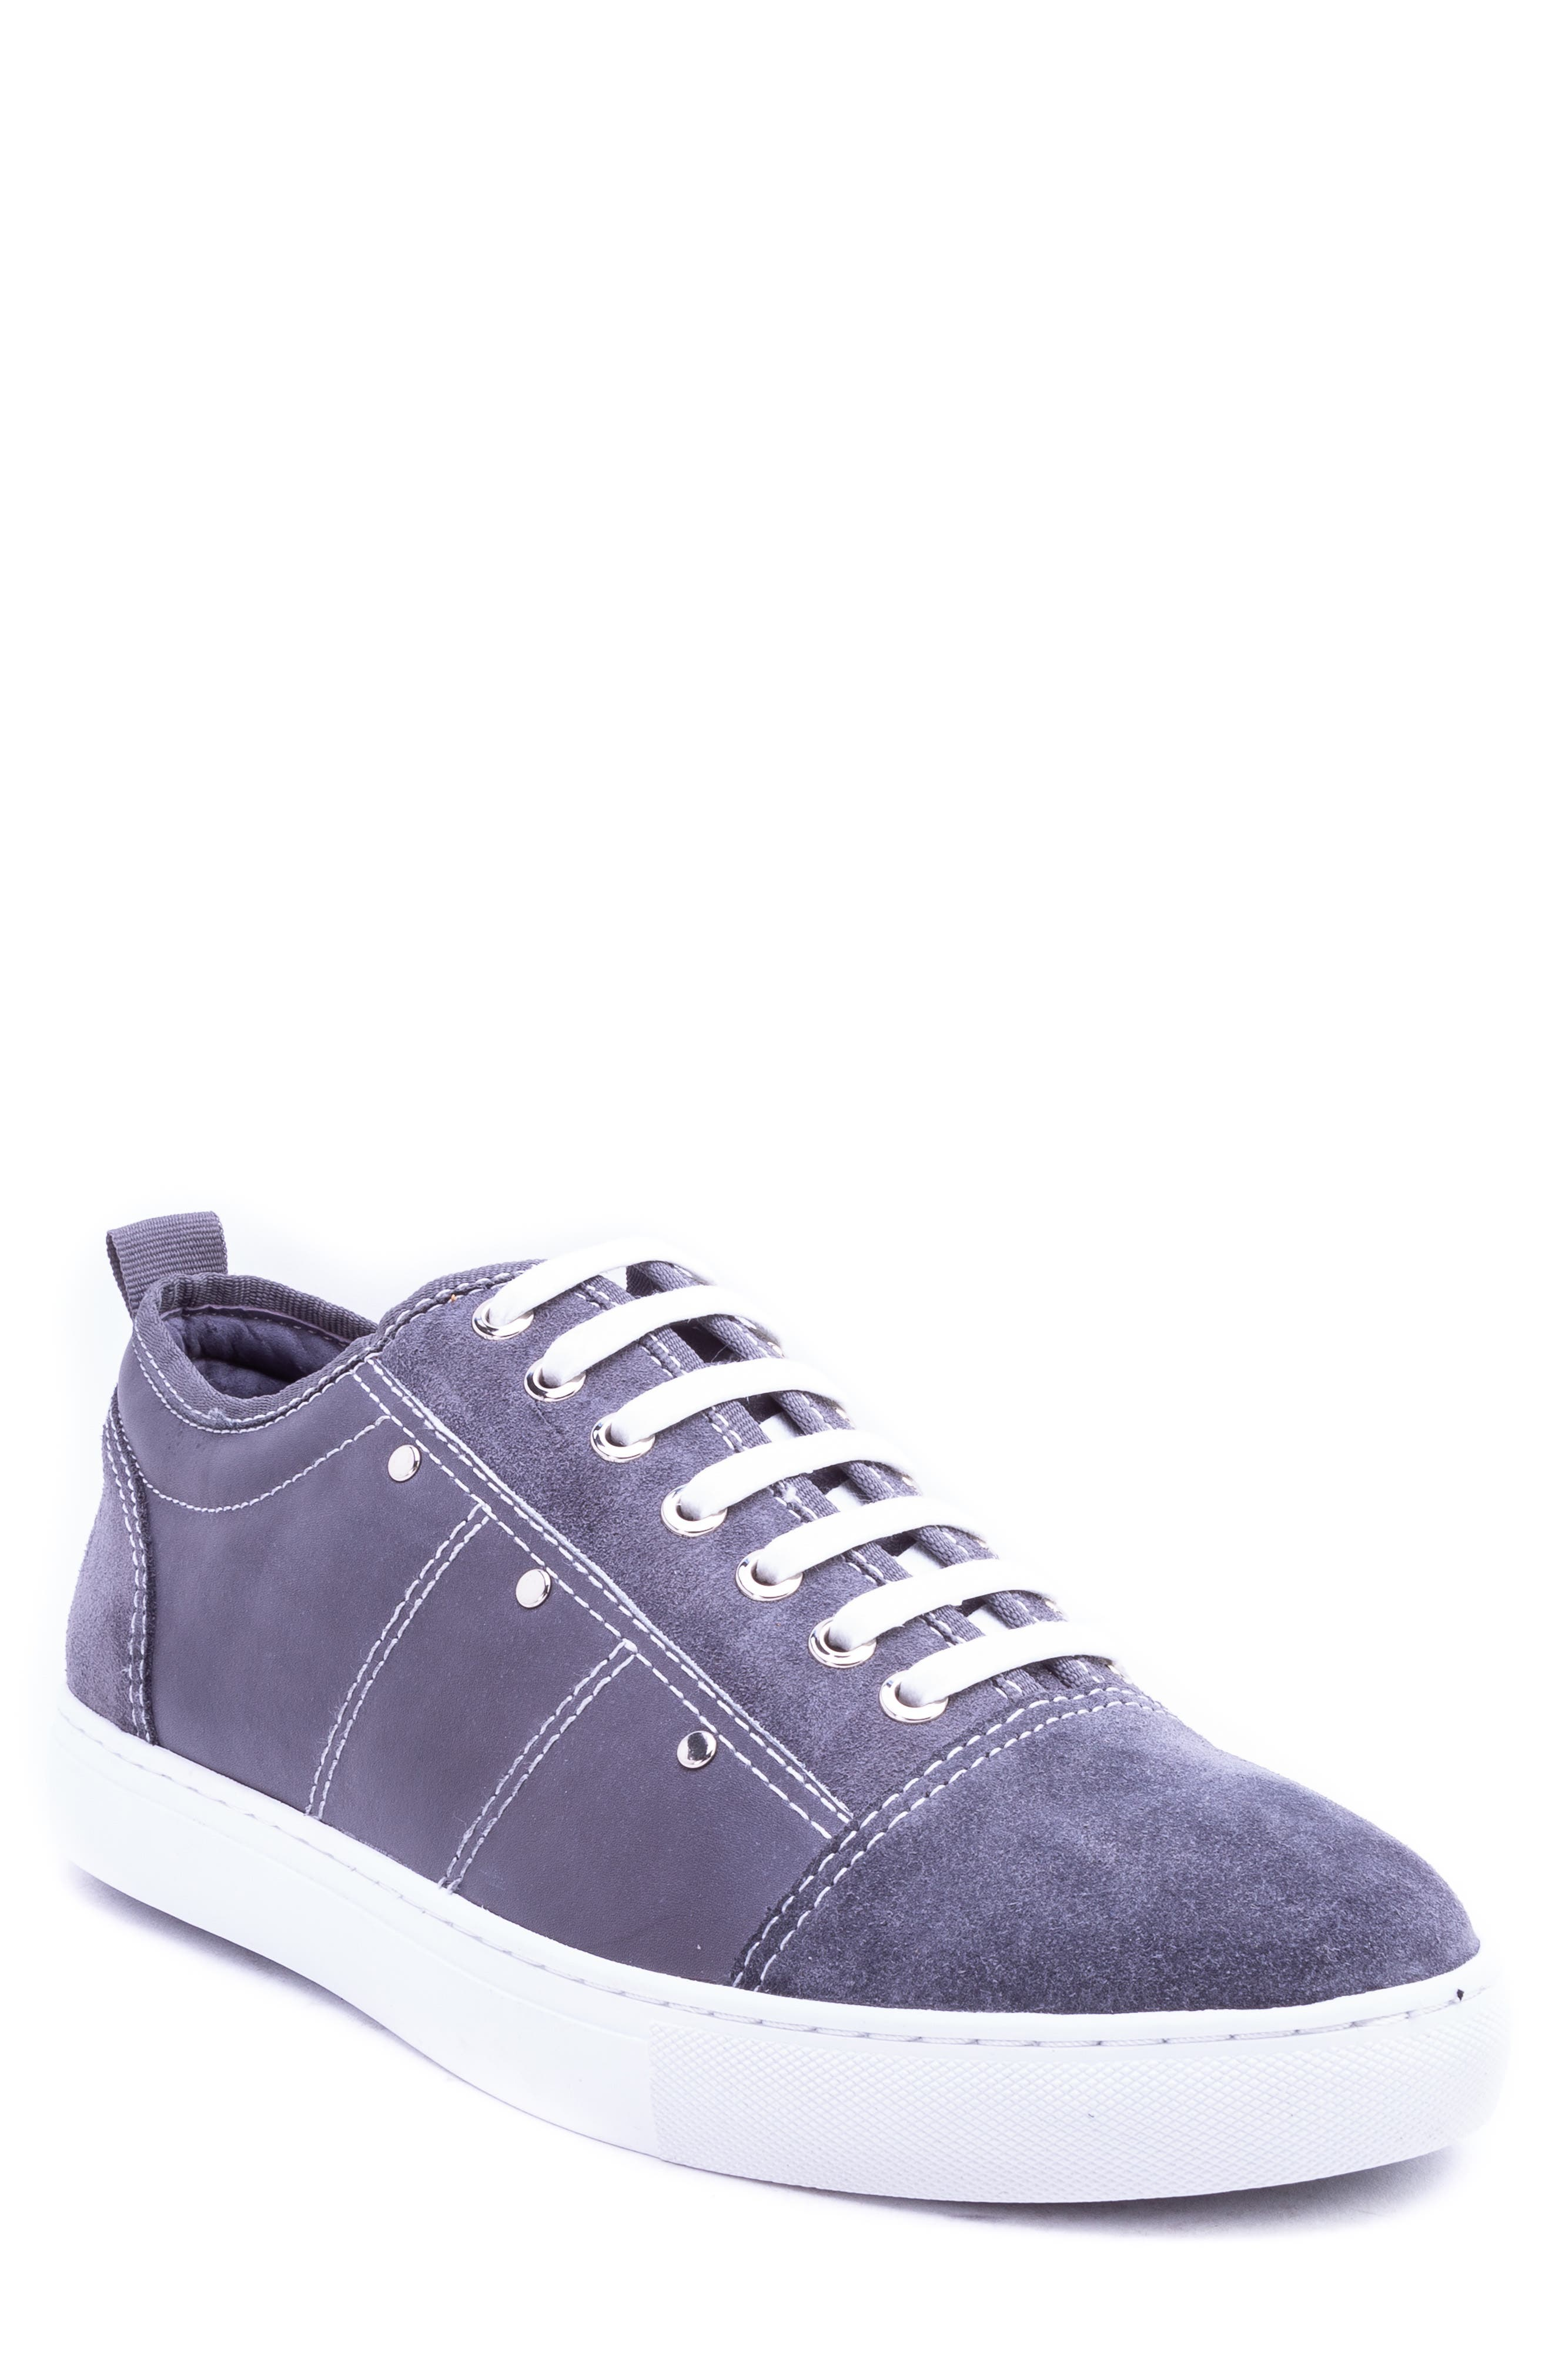 Severn Studded Low Top Sneaker,                             Main thumbnail 1, color,                             GREY SUEDE/ LEATHER